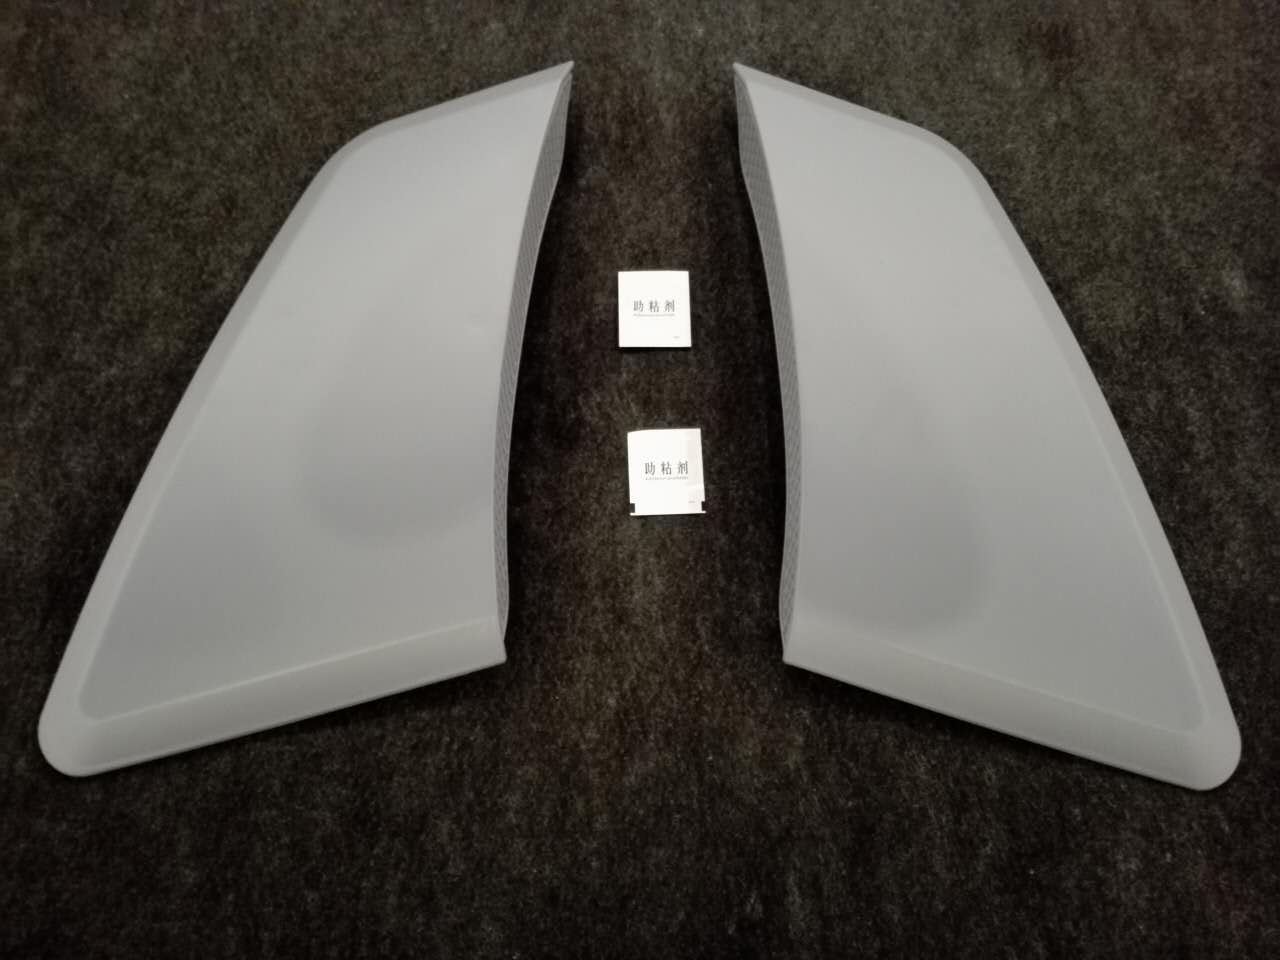 2015-17 Mustang Lower Door Scoops - PAIR - Polyurethane